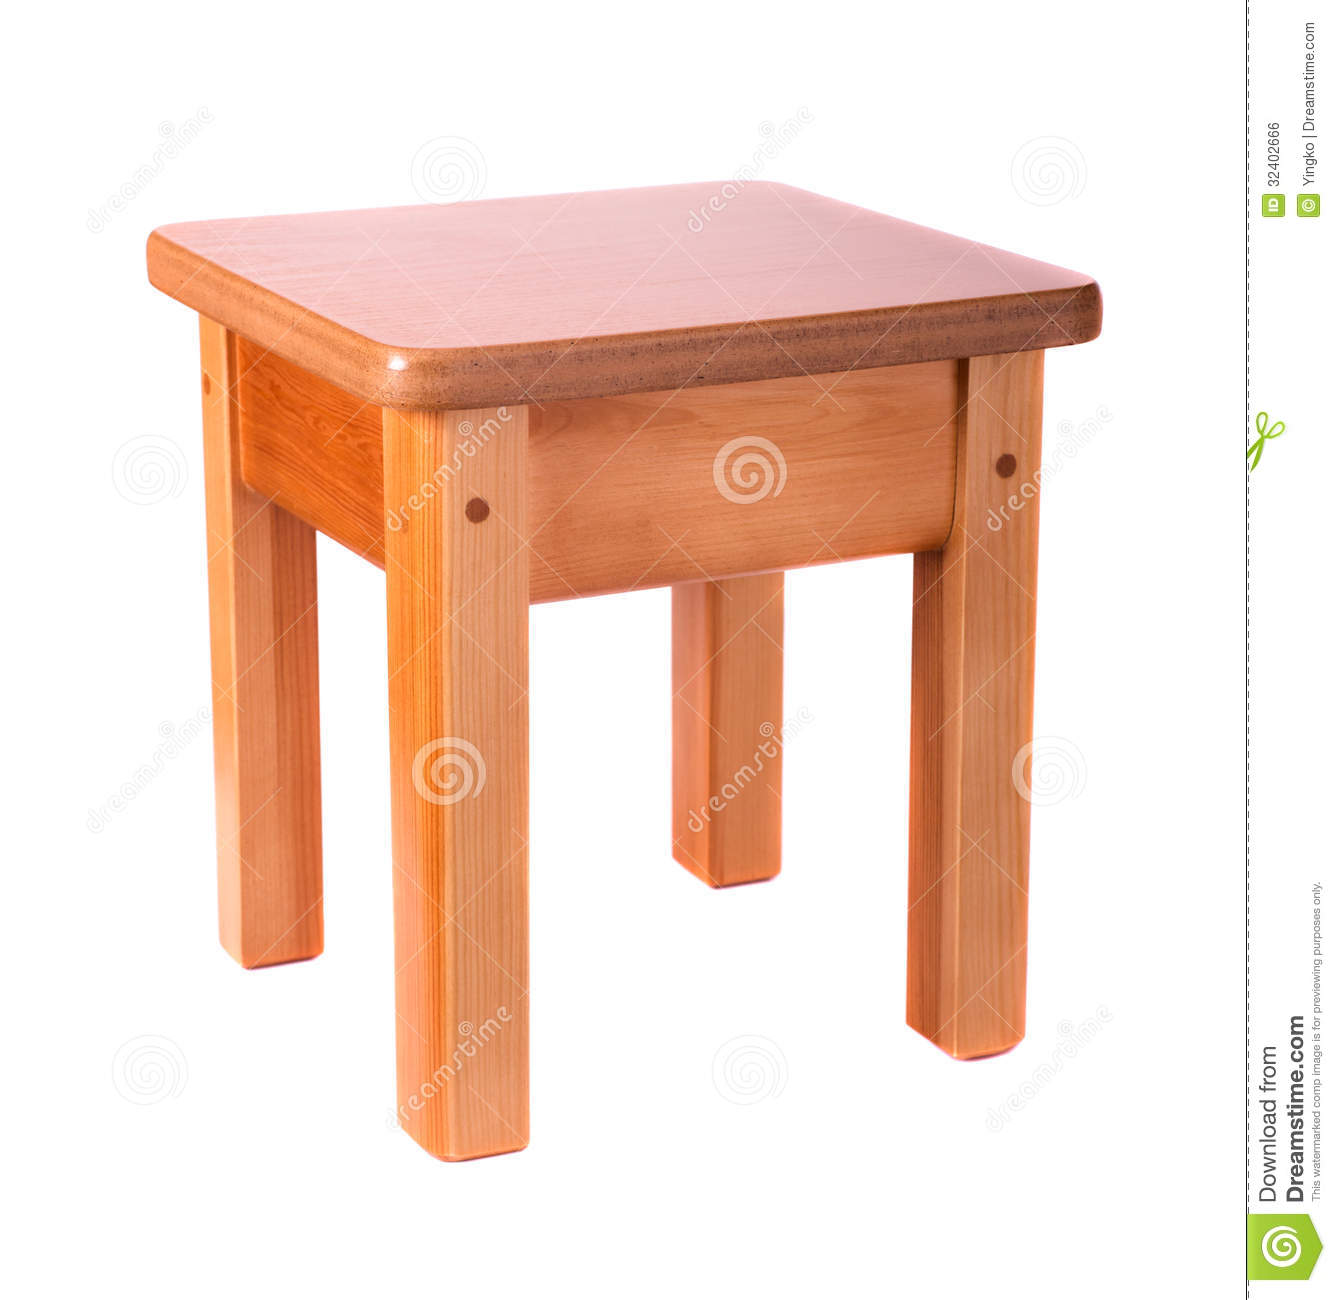 Small Wooden Stool Royalty Free Stock Image Image 32402666